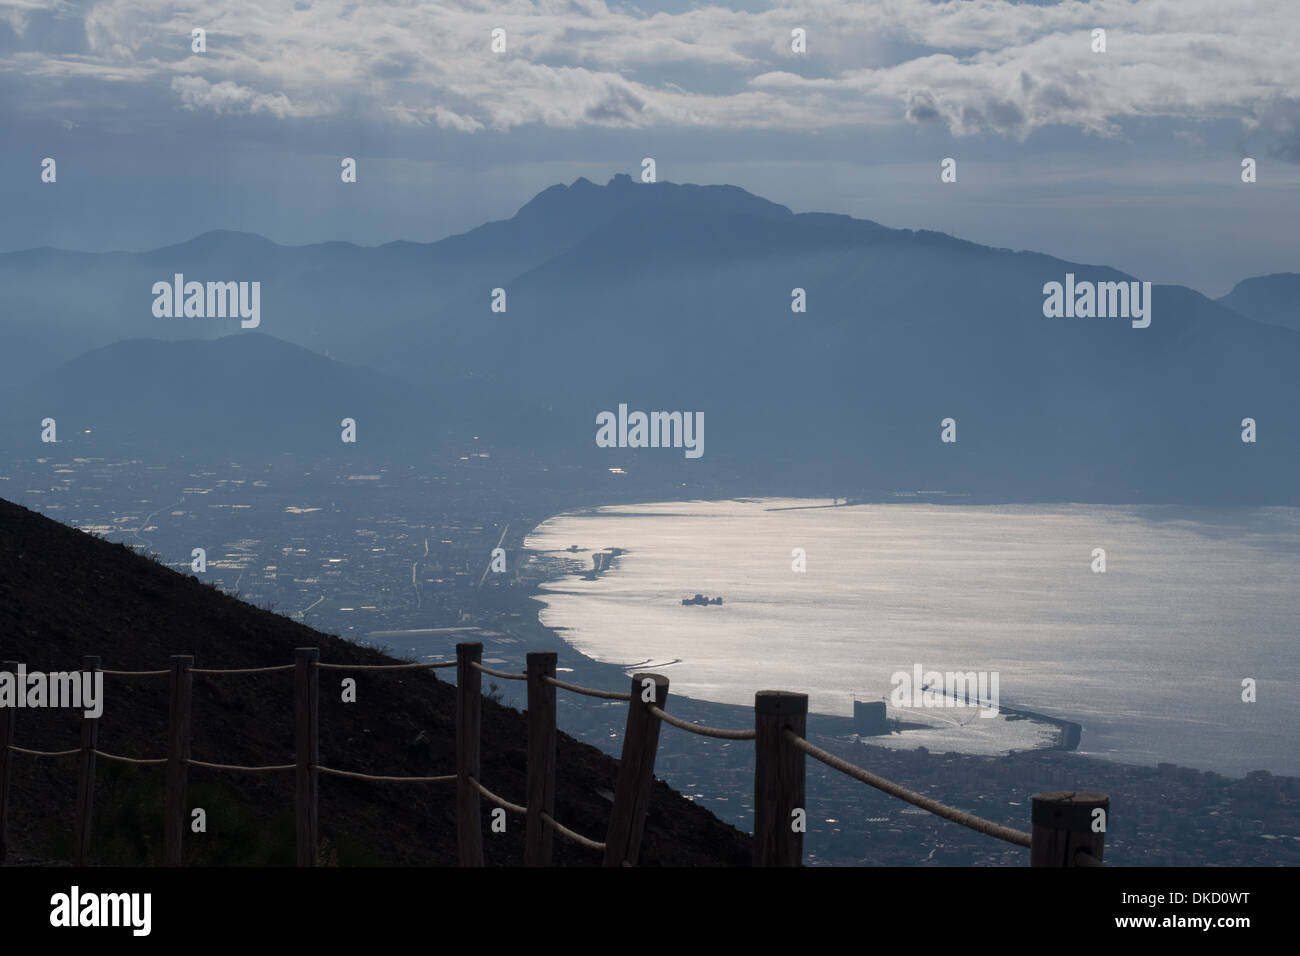 View from Mount Vesuvius (a stratovolcano) over the Gulf of Naples, Italy - Stock Image